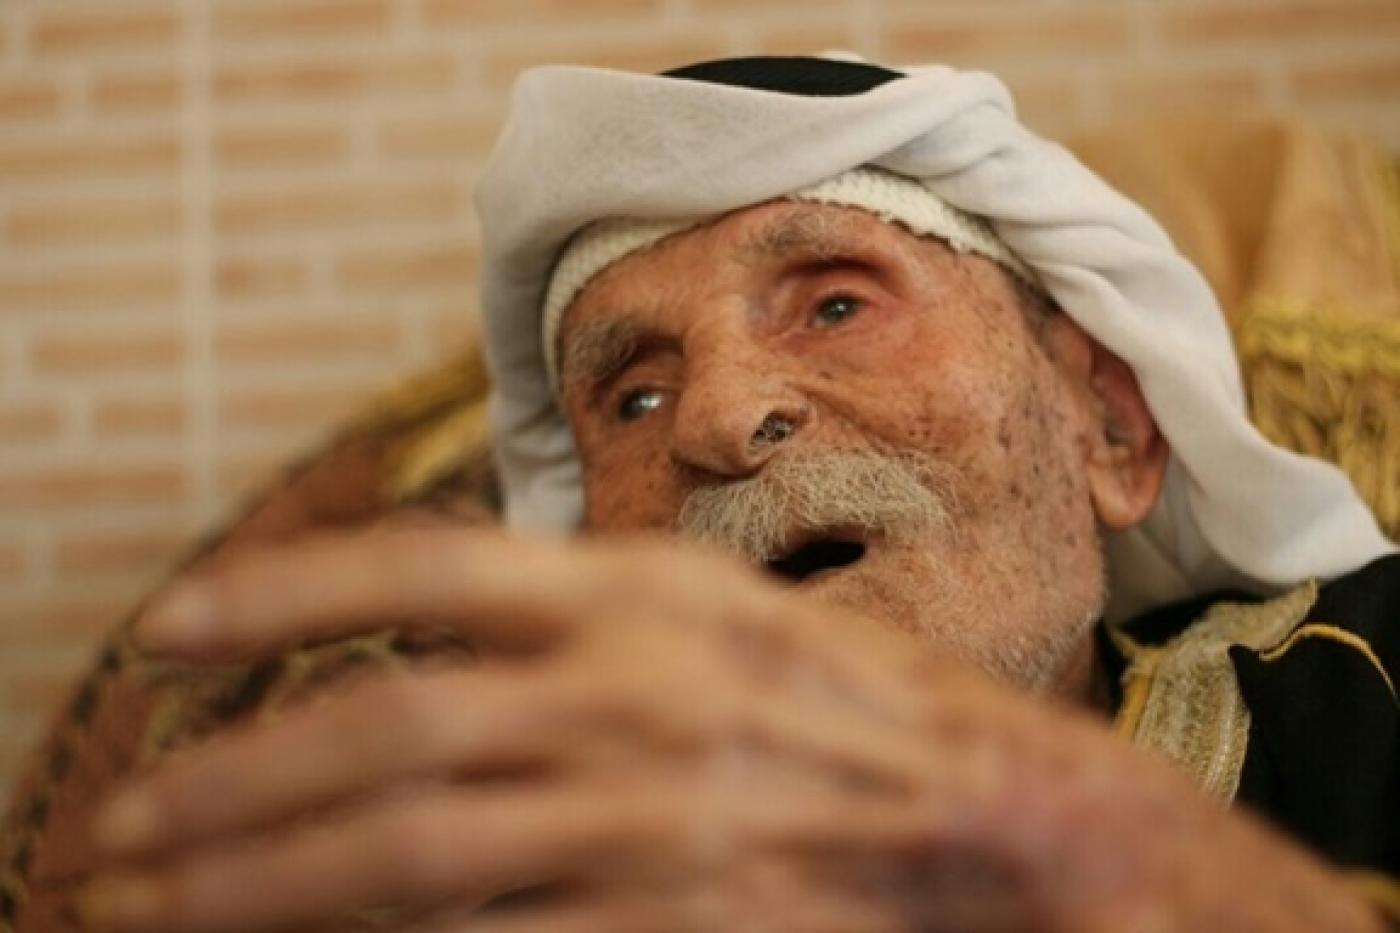 The oldest man in Gaza: 'Back in the old days, your home was